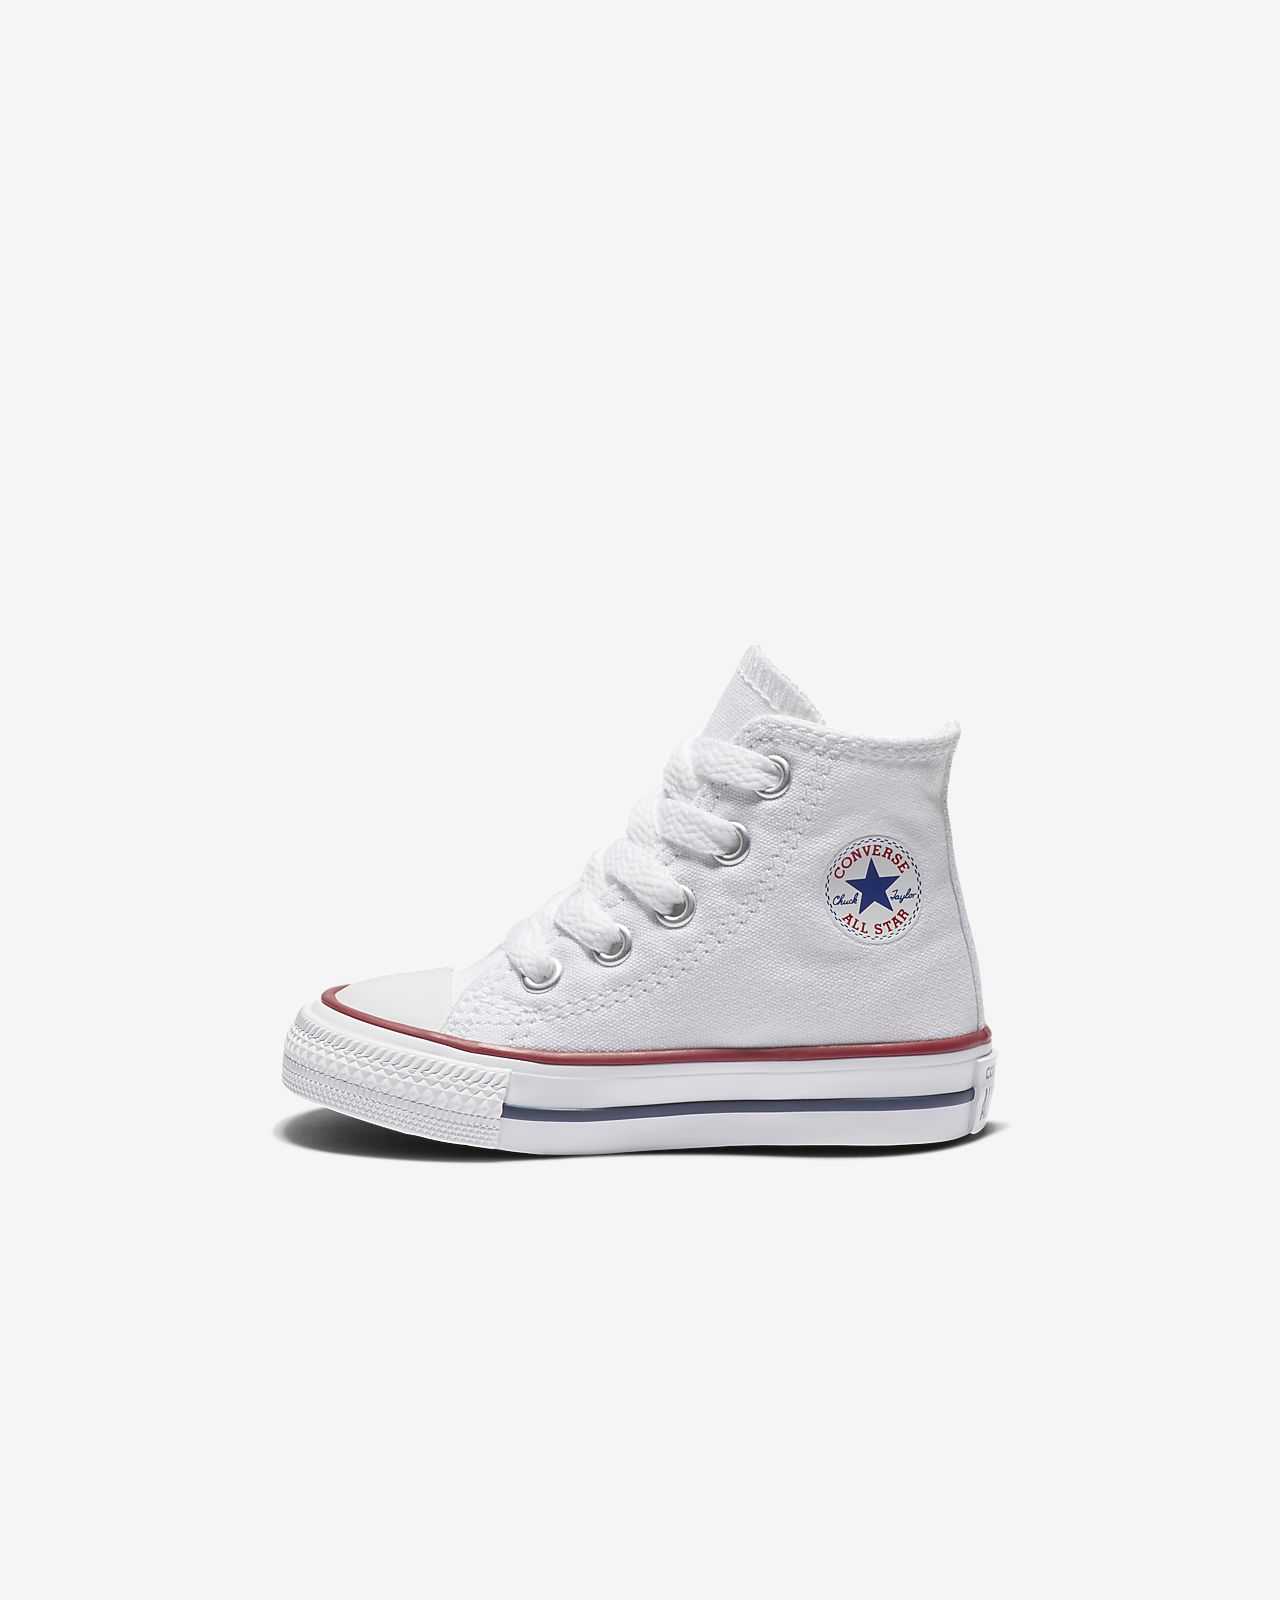 582e75c7eb69 Converse Chuck Taylor All Star High Top (2c-10c) Infant Toddler Shoe ...